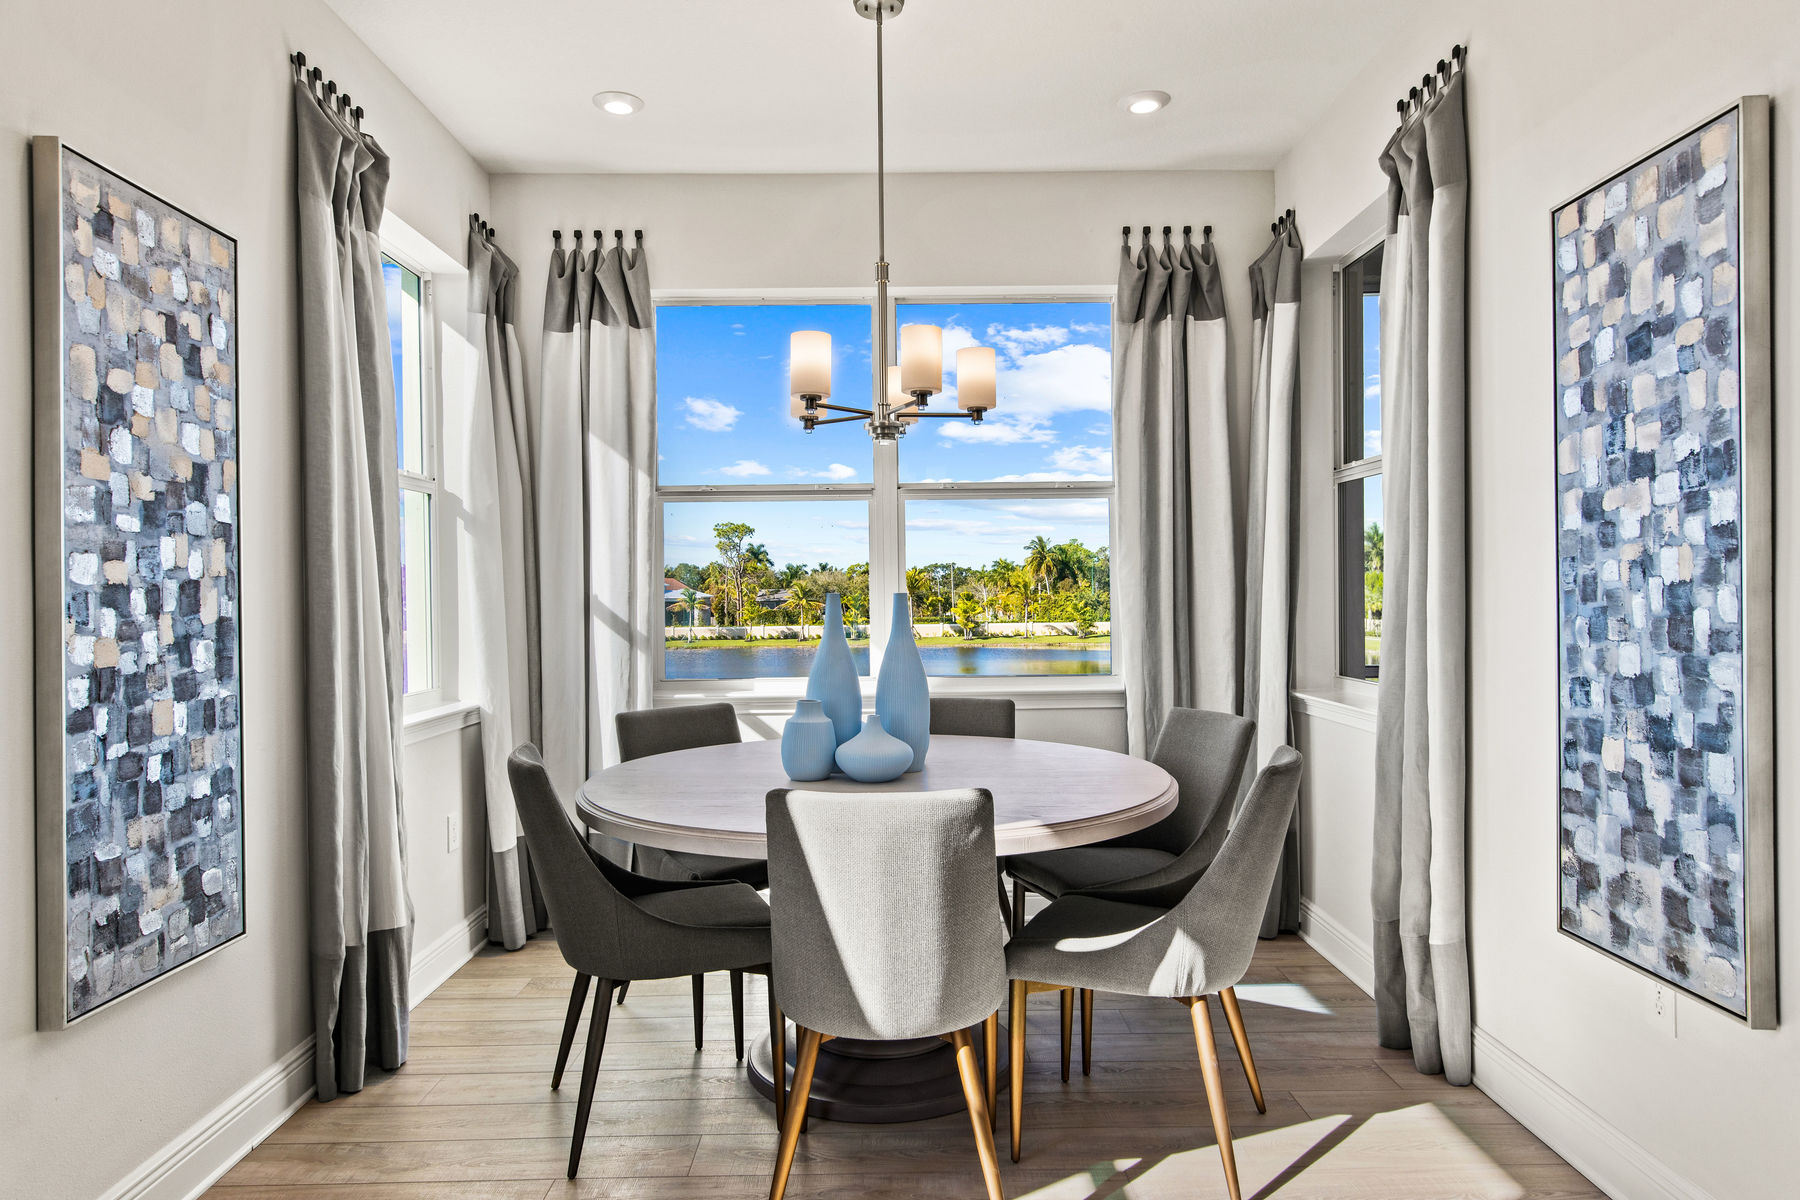 Oceangrove Plan Dining at Arboretum in Naples Florida by Mattamy Homes